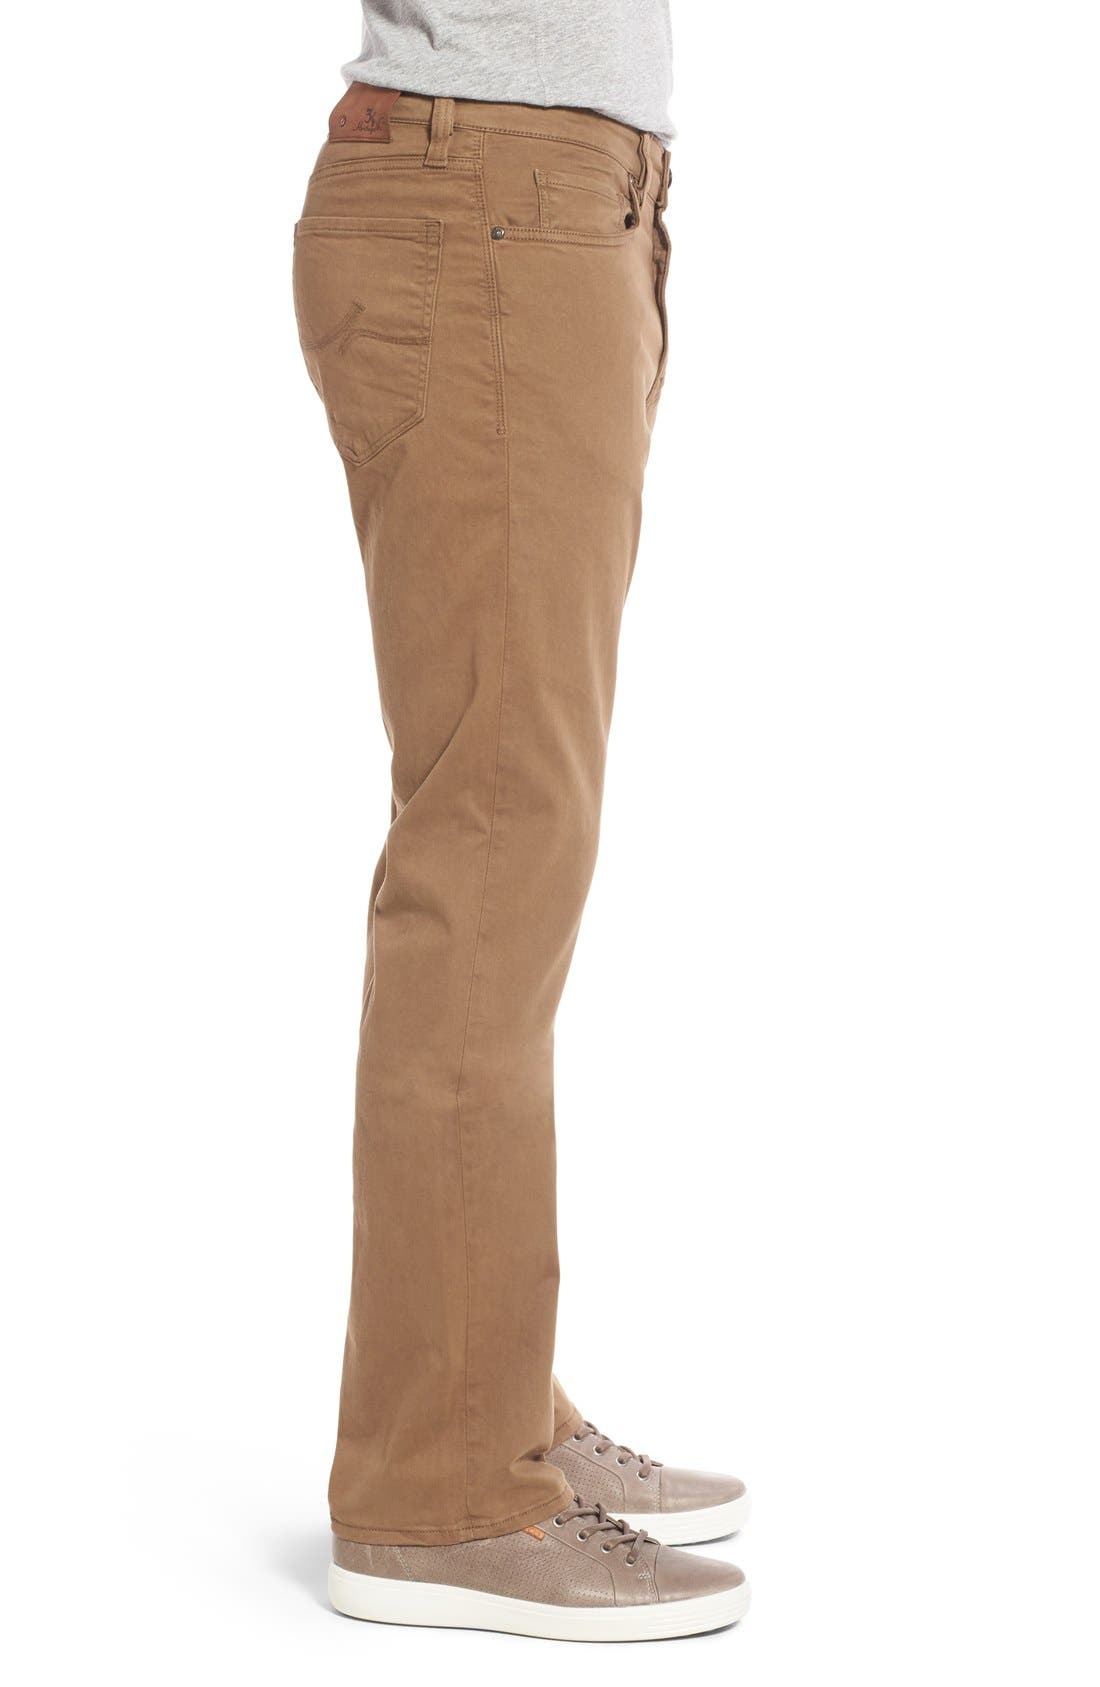 'Charisma' Relaxed Fit Jeans,                             Alternate thumbnail 3, color,